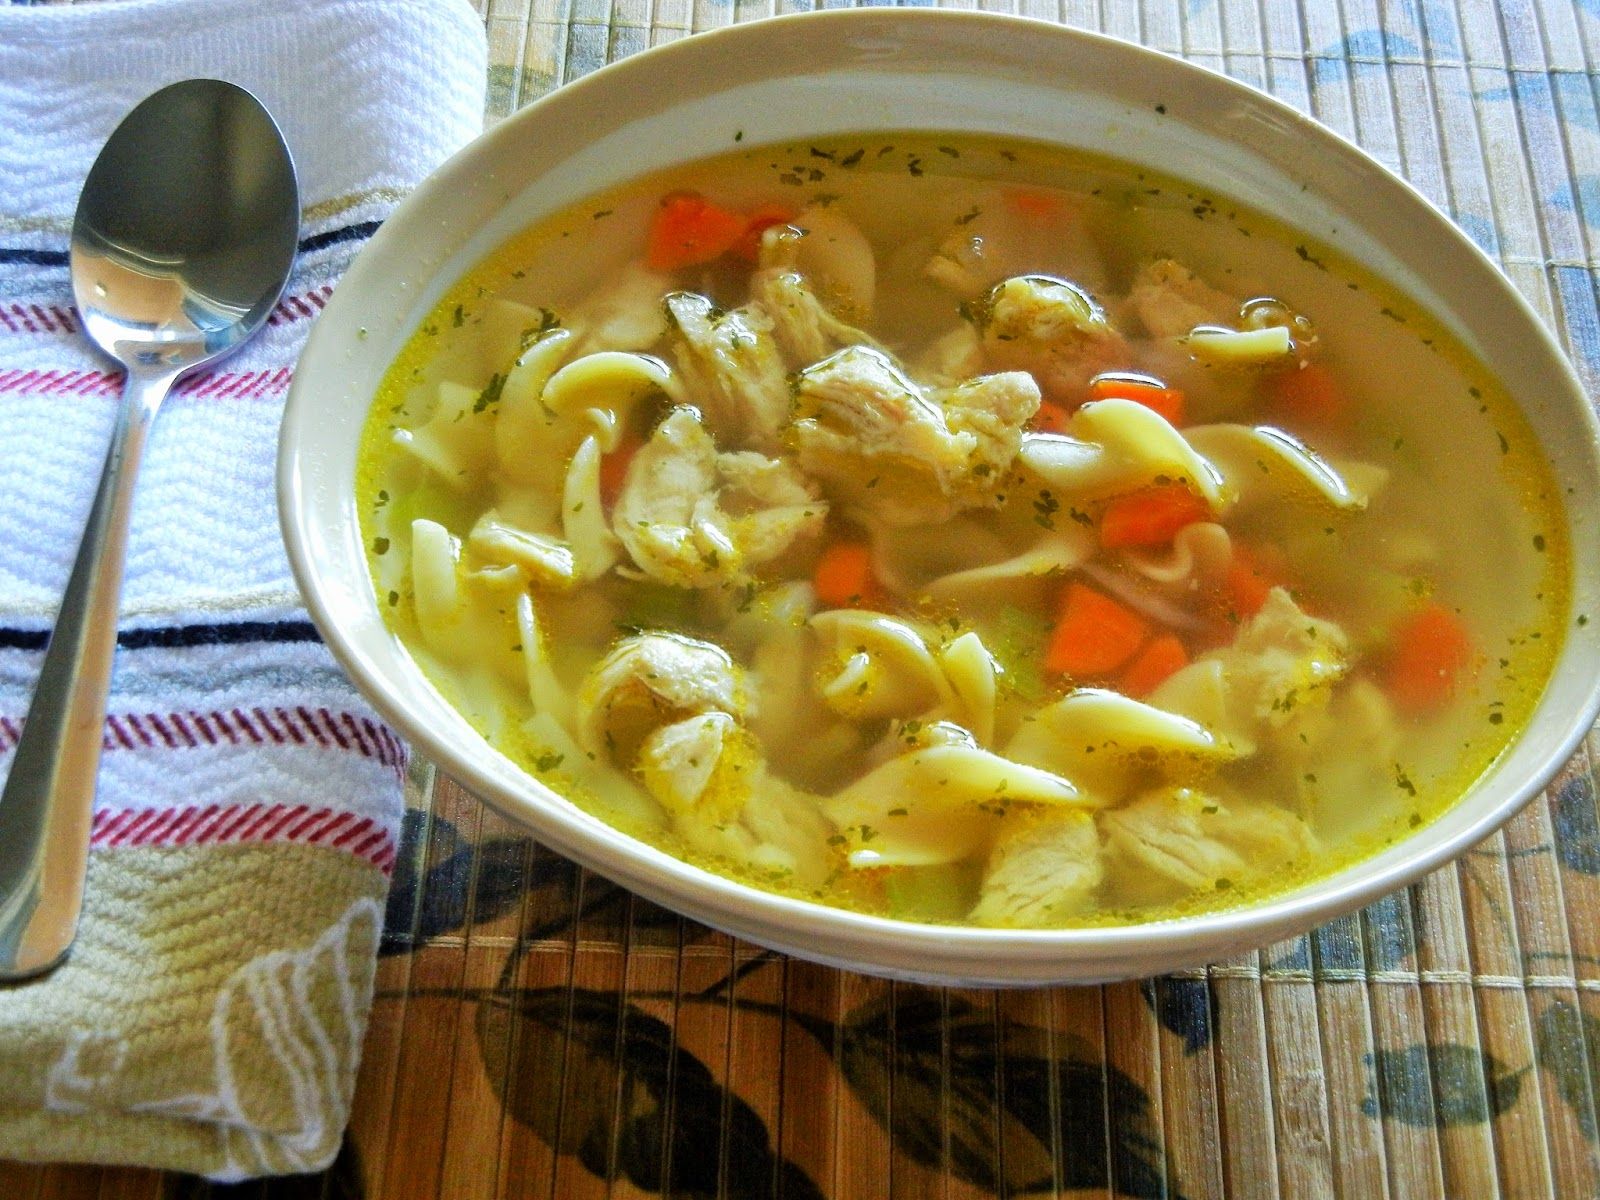 Chicken Noodle Soup Recipe For Kids of Chicken Noodle Soup